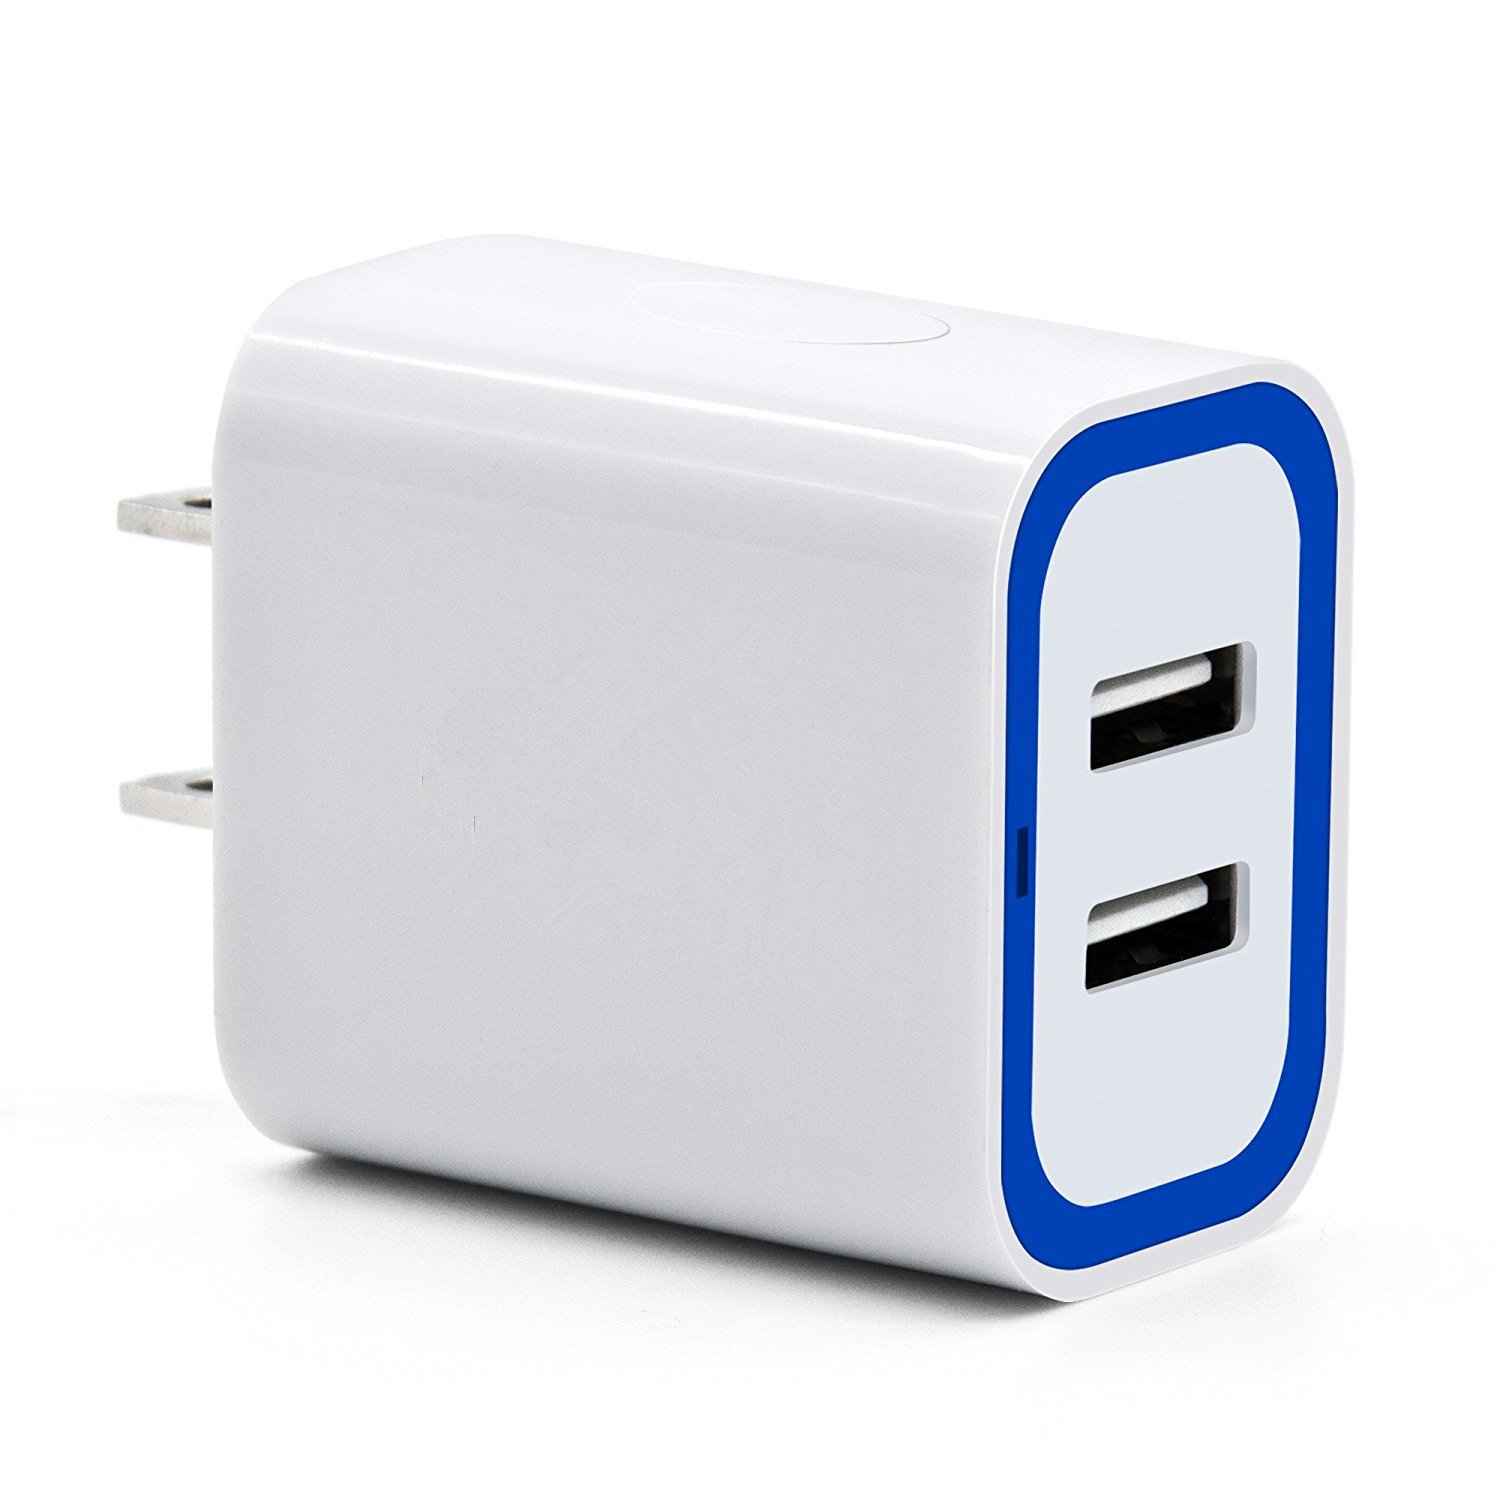 the best attitude eafb5 ff9b0 2.4A/12W Dual USB Wall Charger Adapter Plug Compatible with iPhone  X/8/7/6S/6S Plus, iPad Pro/Air 2/mini2, Samsung Galaxy/Note, LG, Nexus,  HTC, and ...